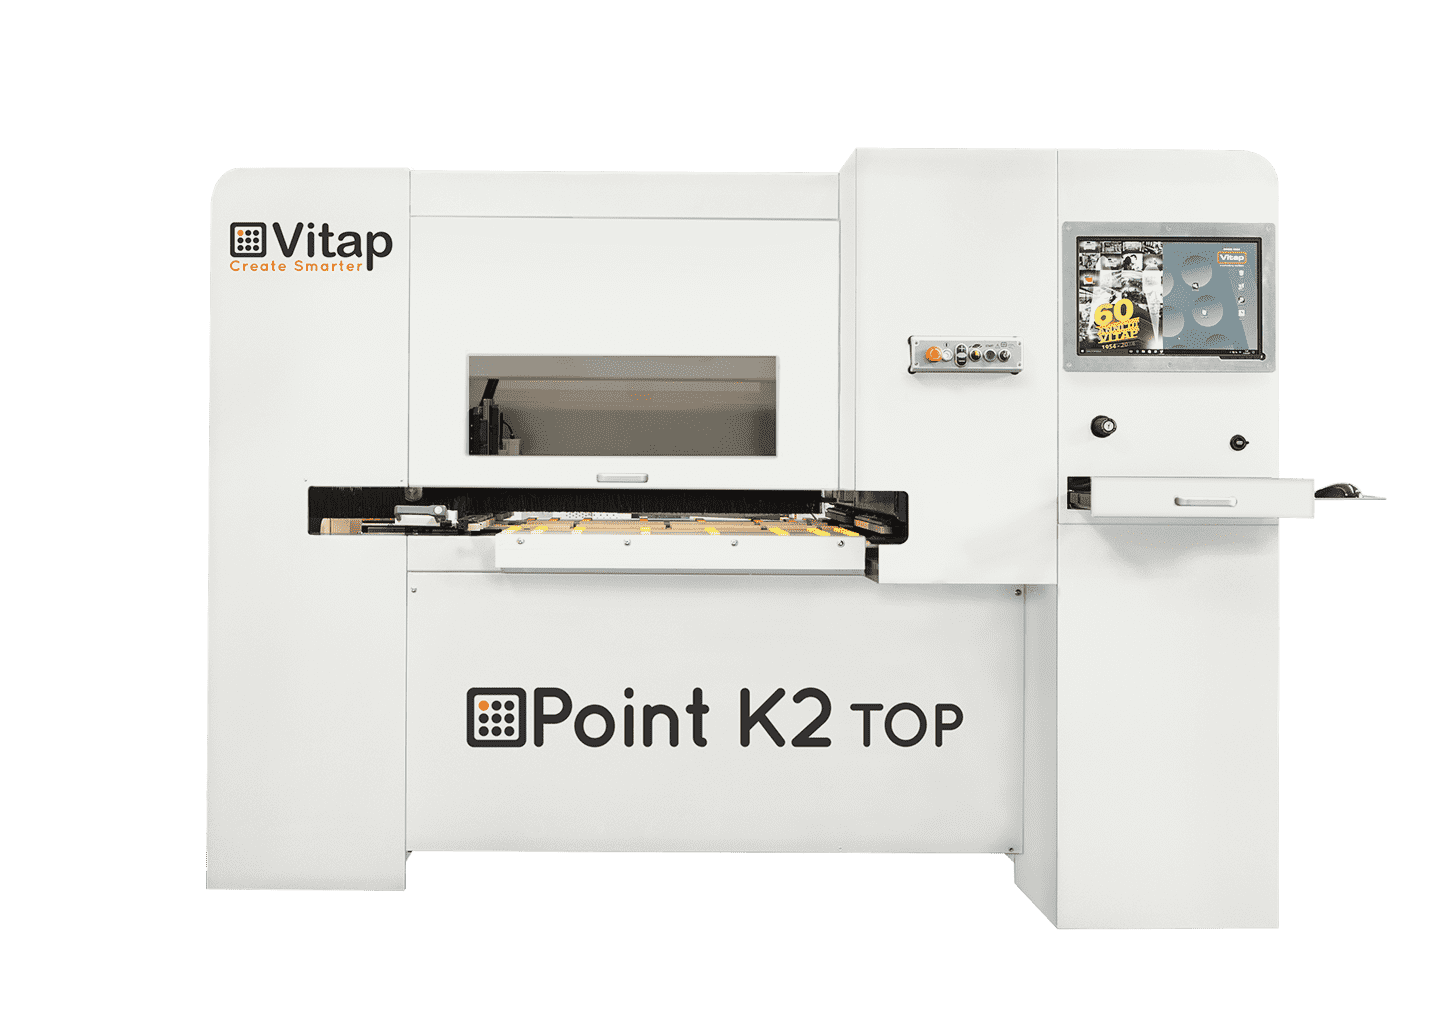 Vitap - Point K2 Top